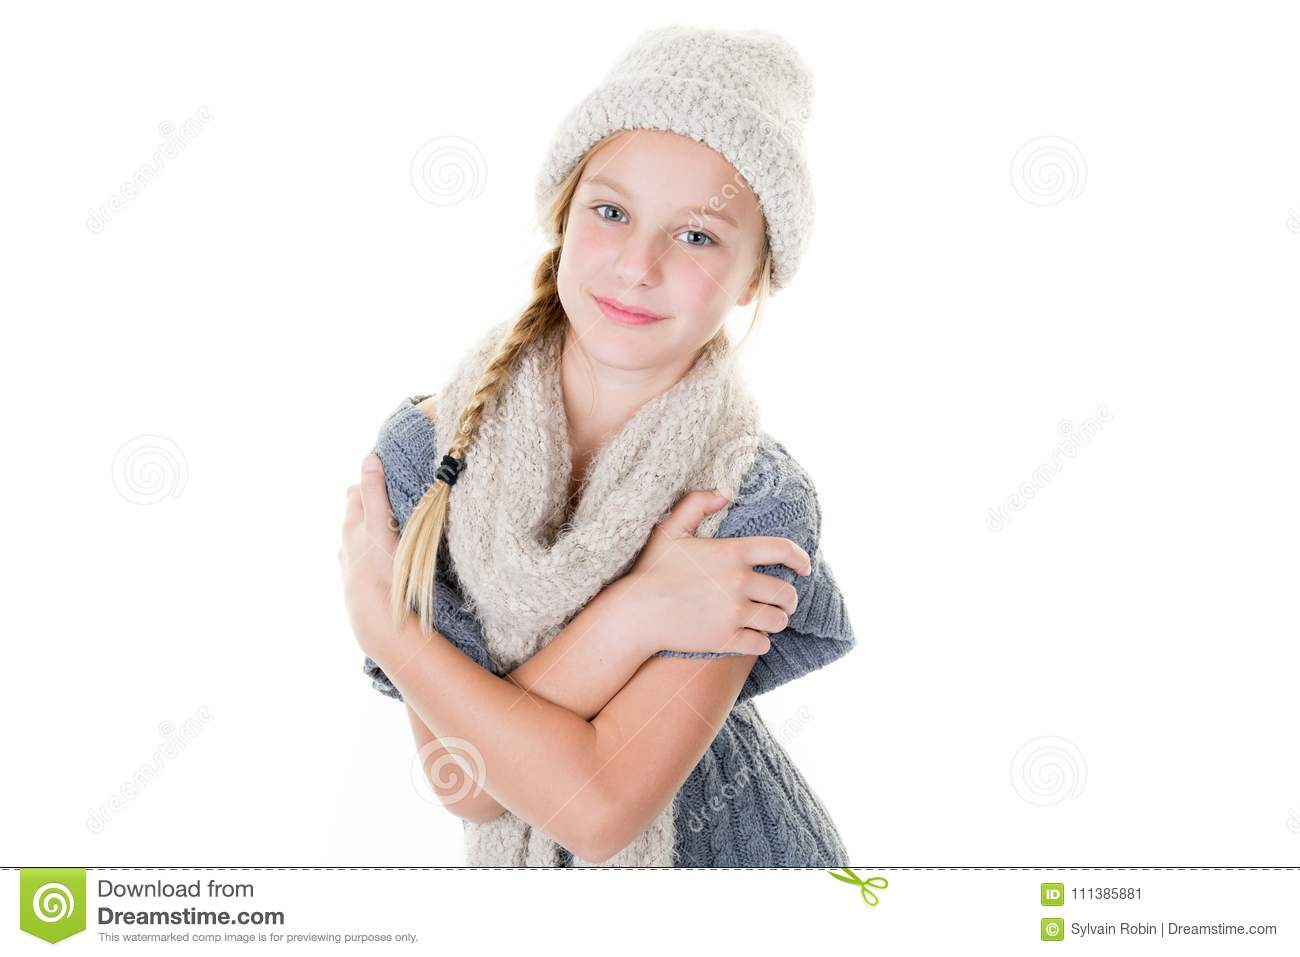 e0204d63cf5a Portrait of young smiling female girl standing with folded hands over white  background and scarf wool cap